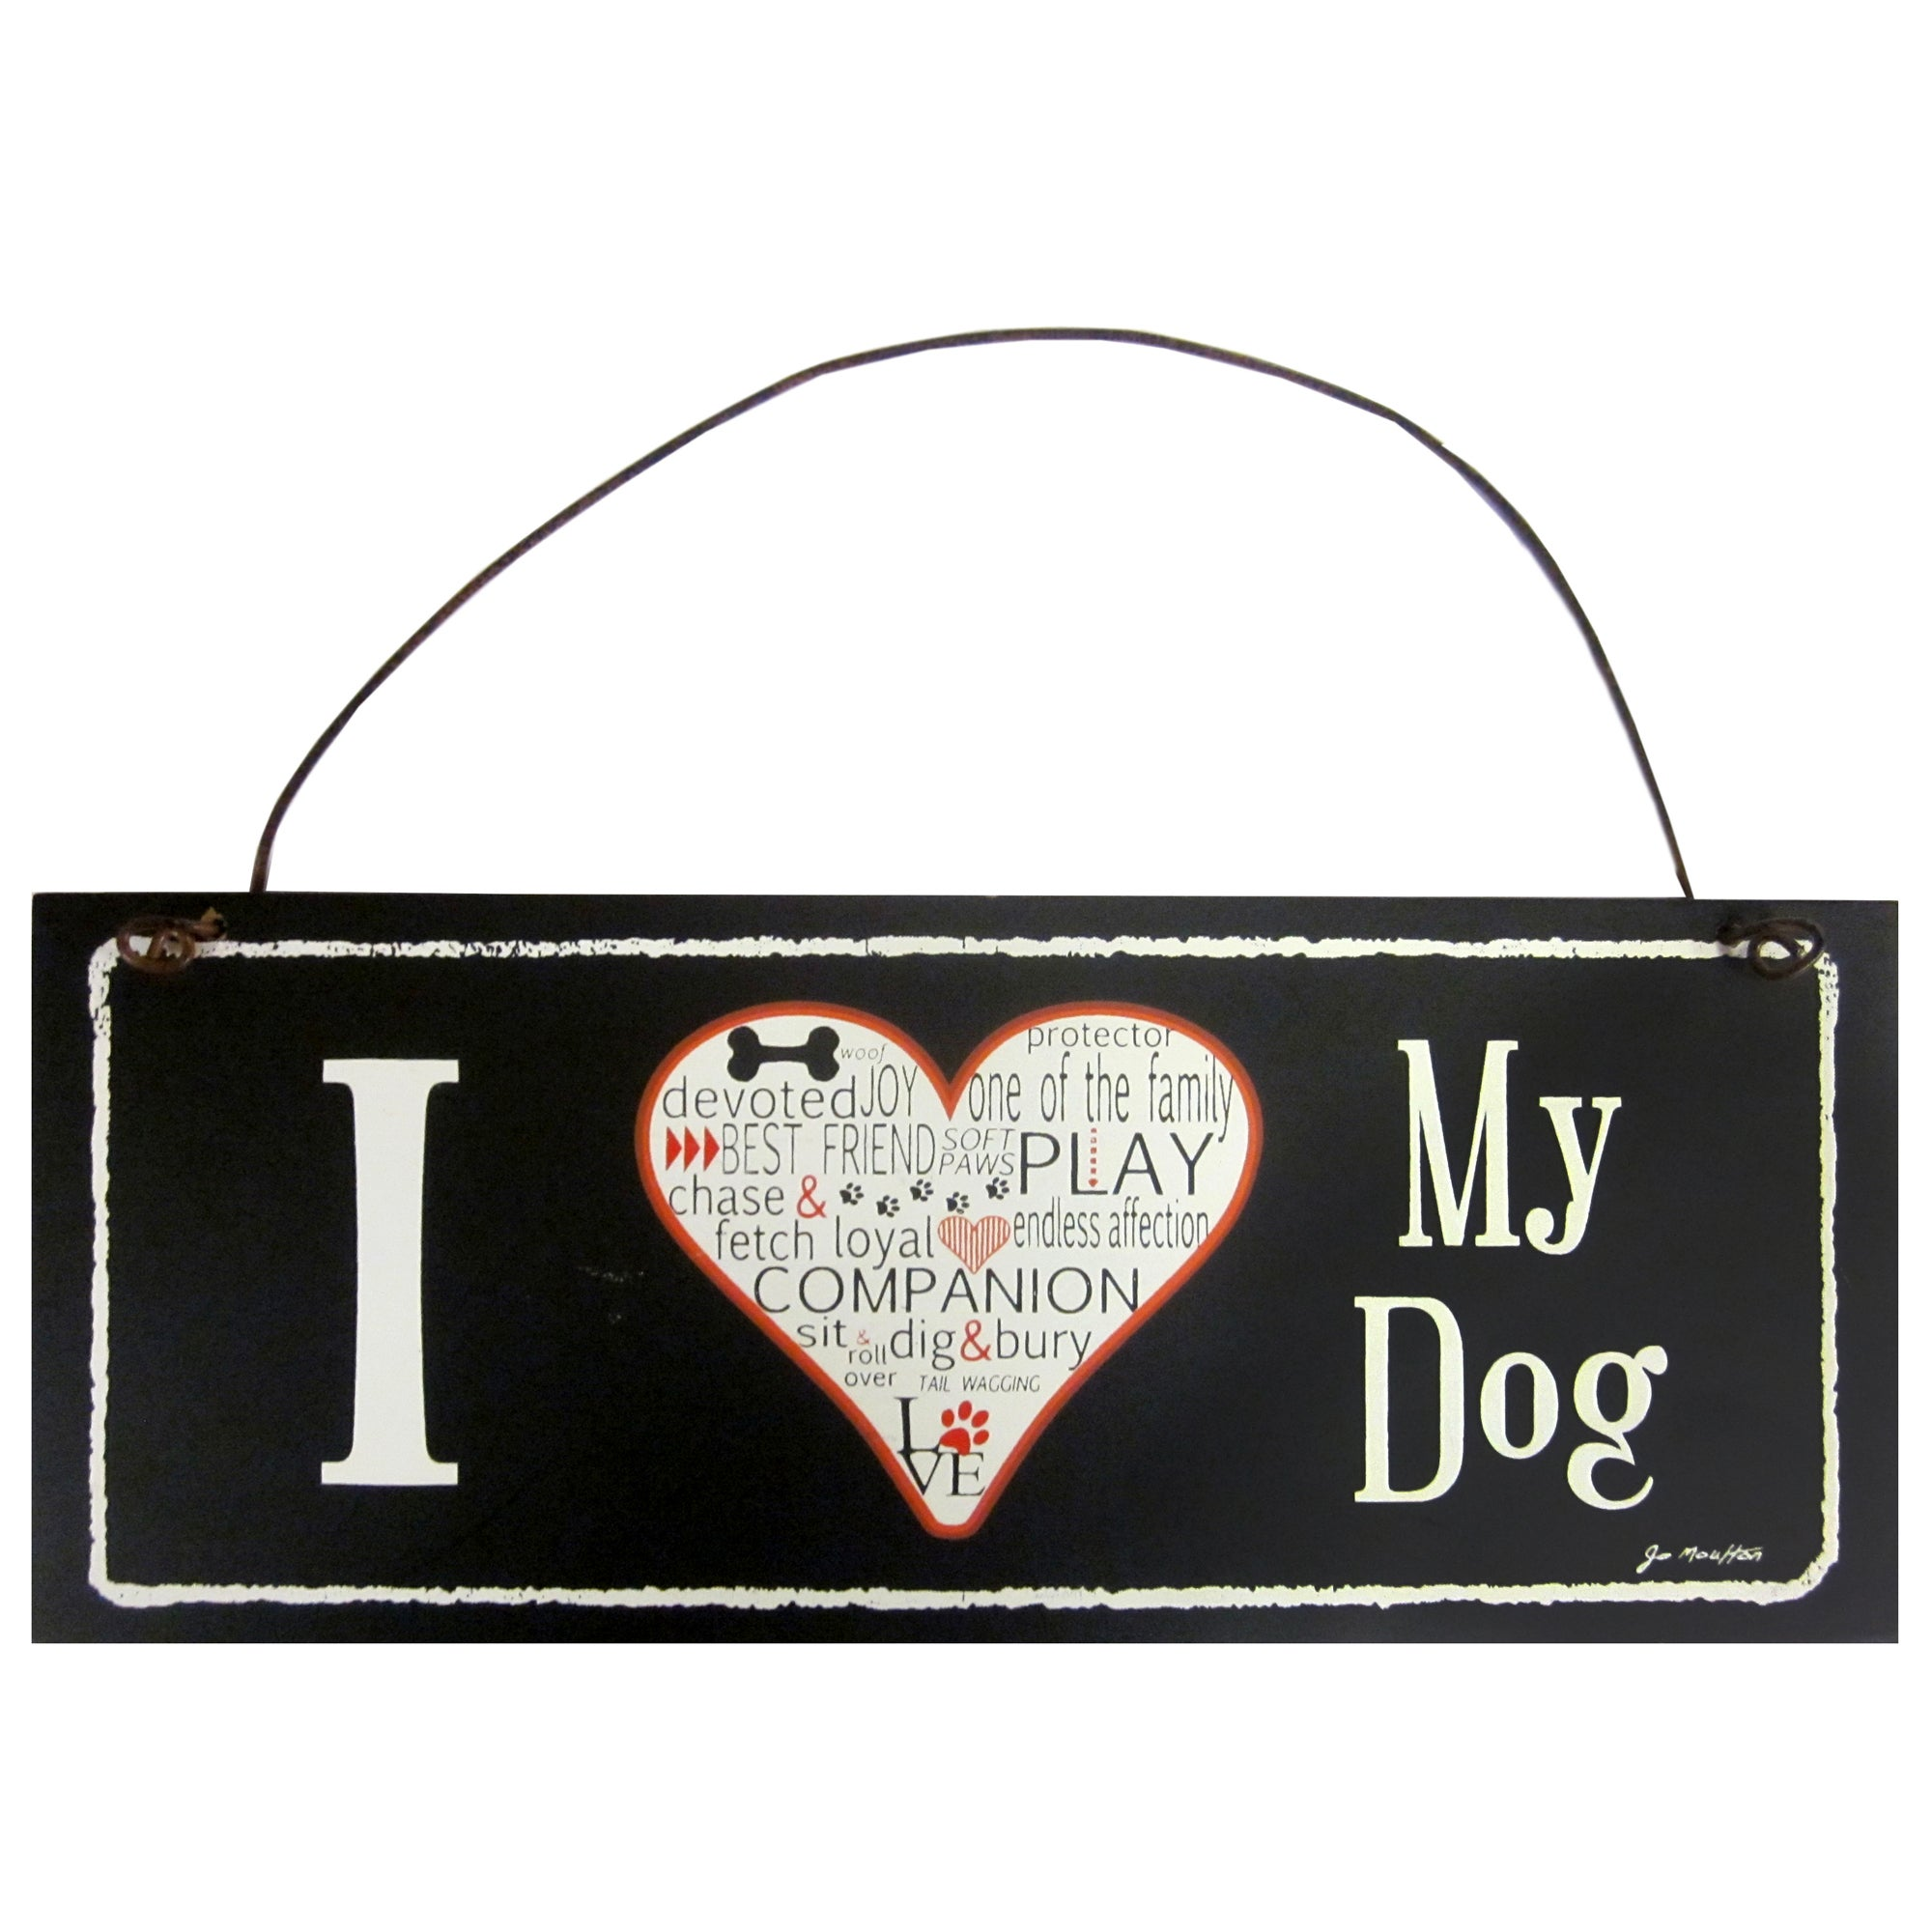 I Love My Dog Wall Plaque